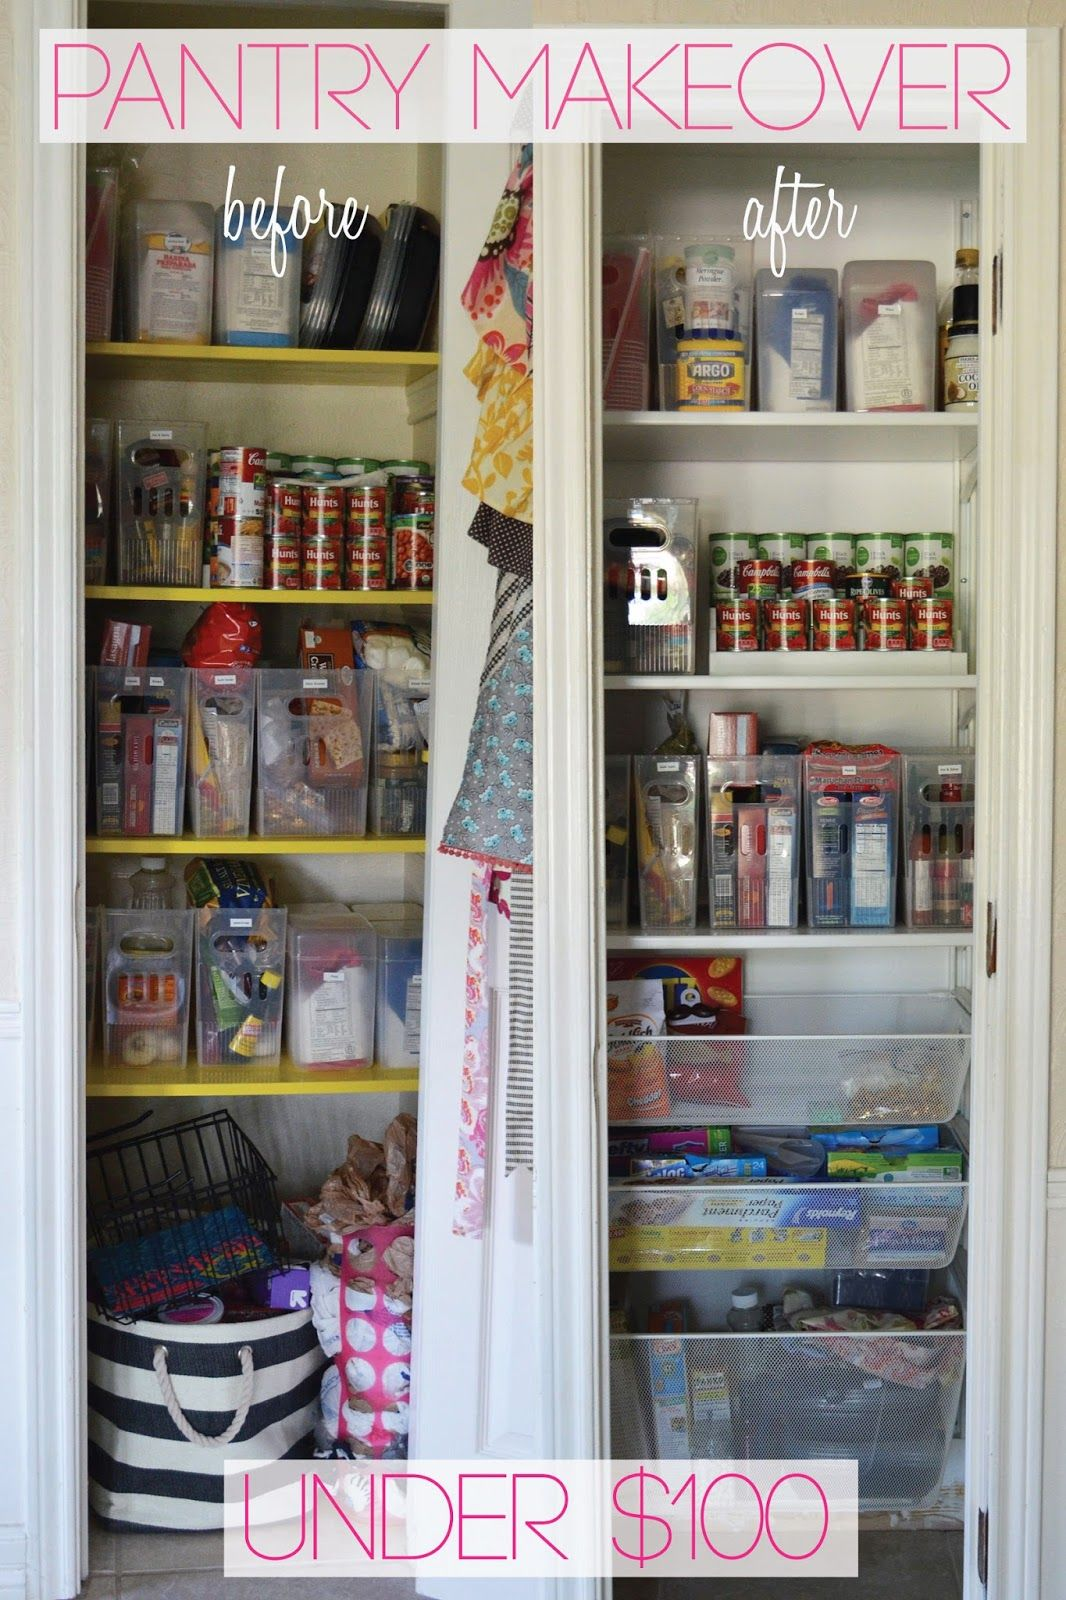 pantry organization using ikea algot system springcleaning home pinterest haus und rund. Black Bedroom Furniture Sets. Home Design Ideas